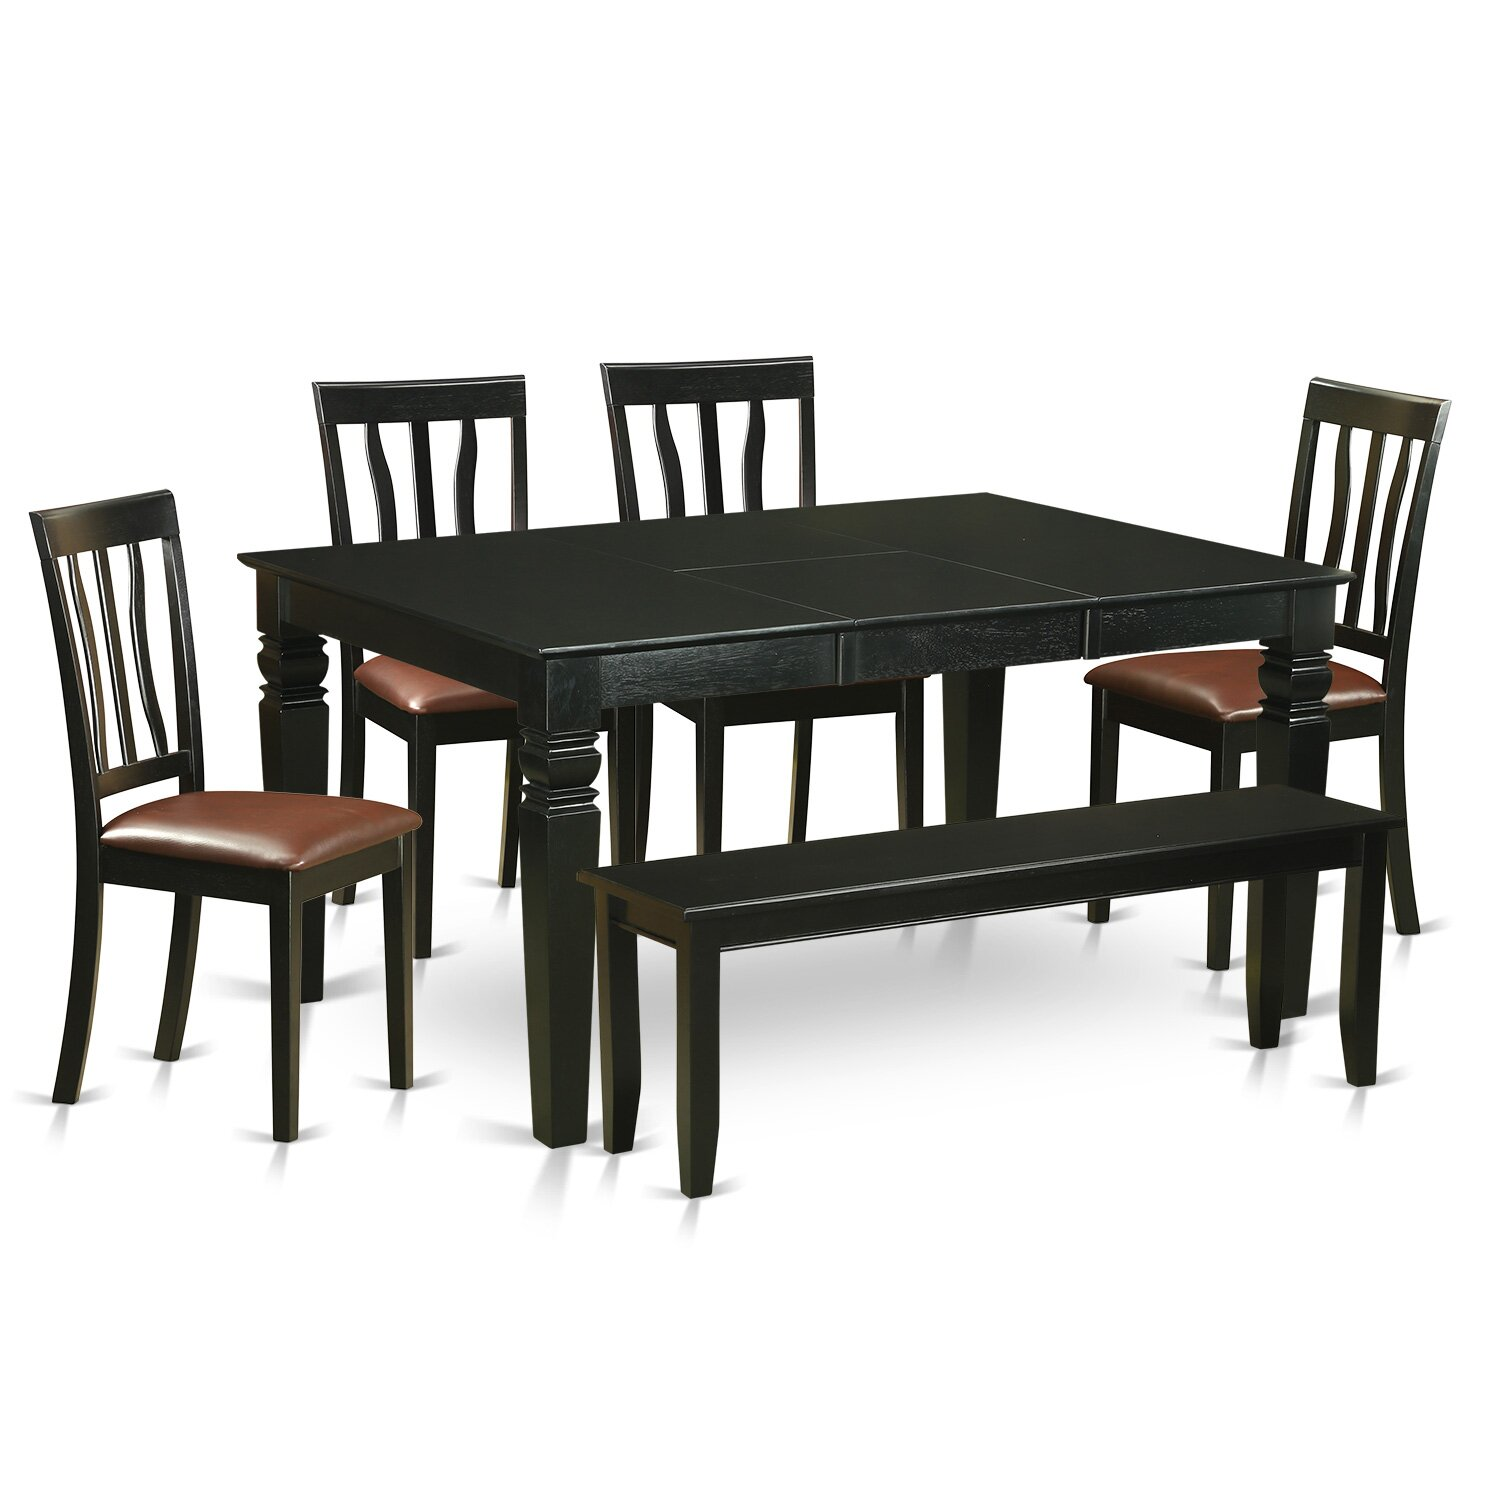 Wooden importers weston 6 piece dining set wayfair for Dining room table for 6